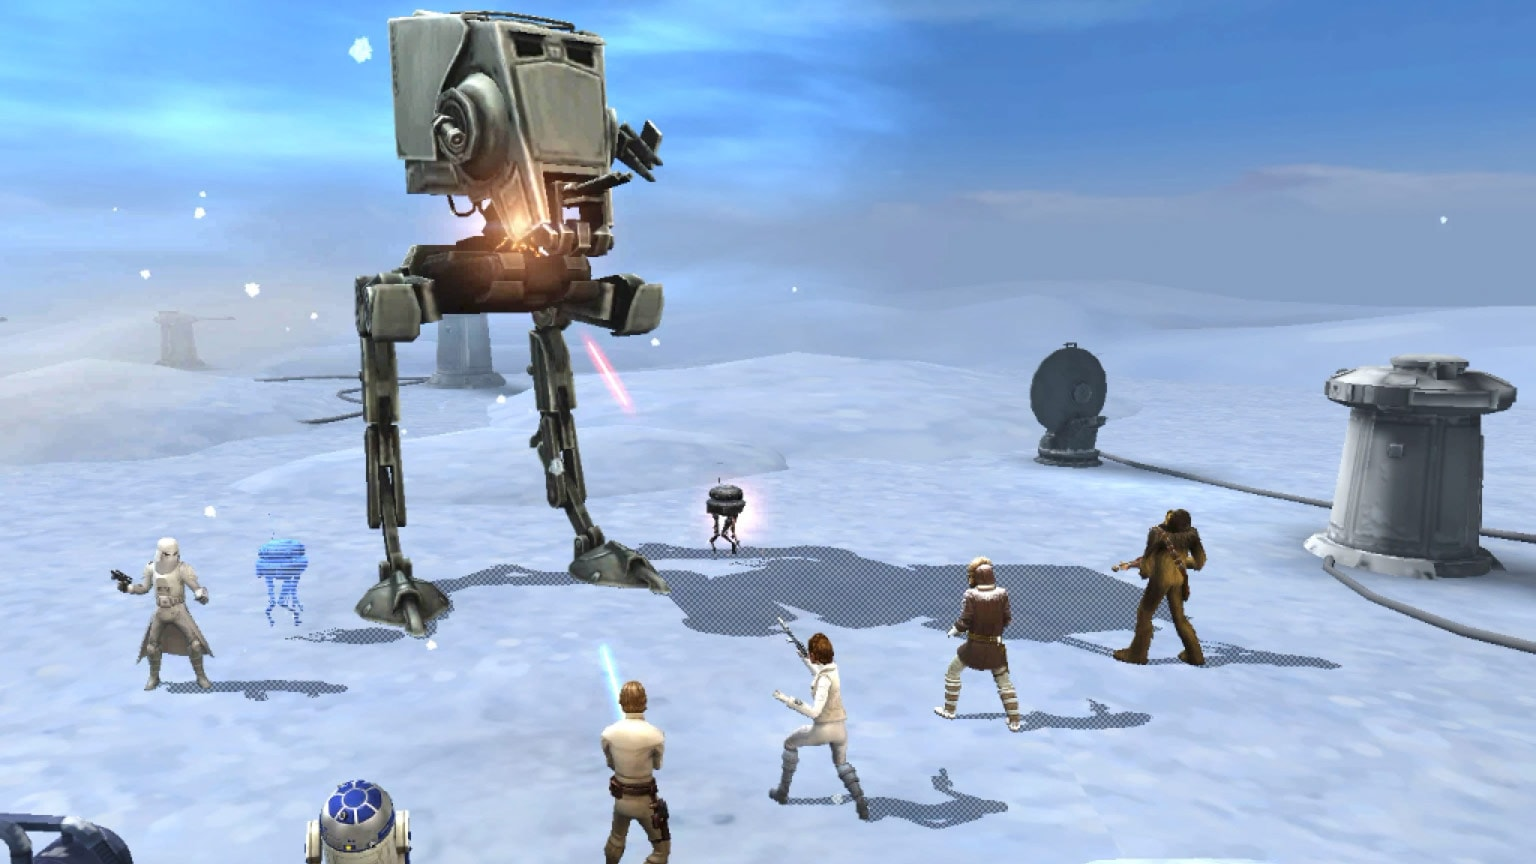 Android Hack and Slash Games: 10 of the Most Popular Ones of